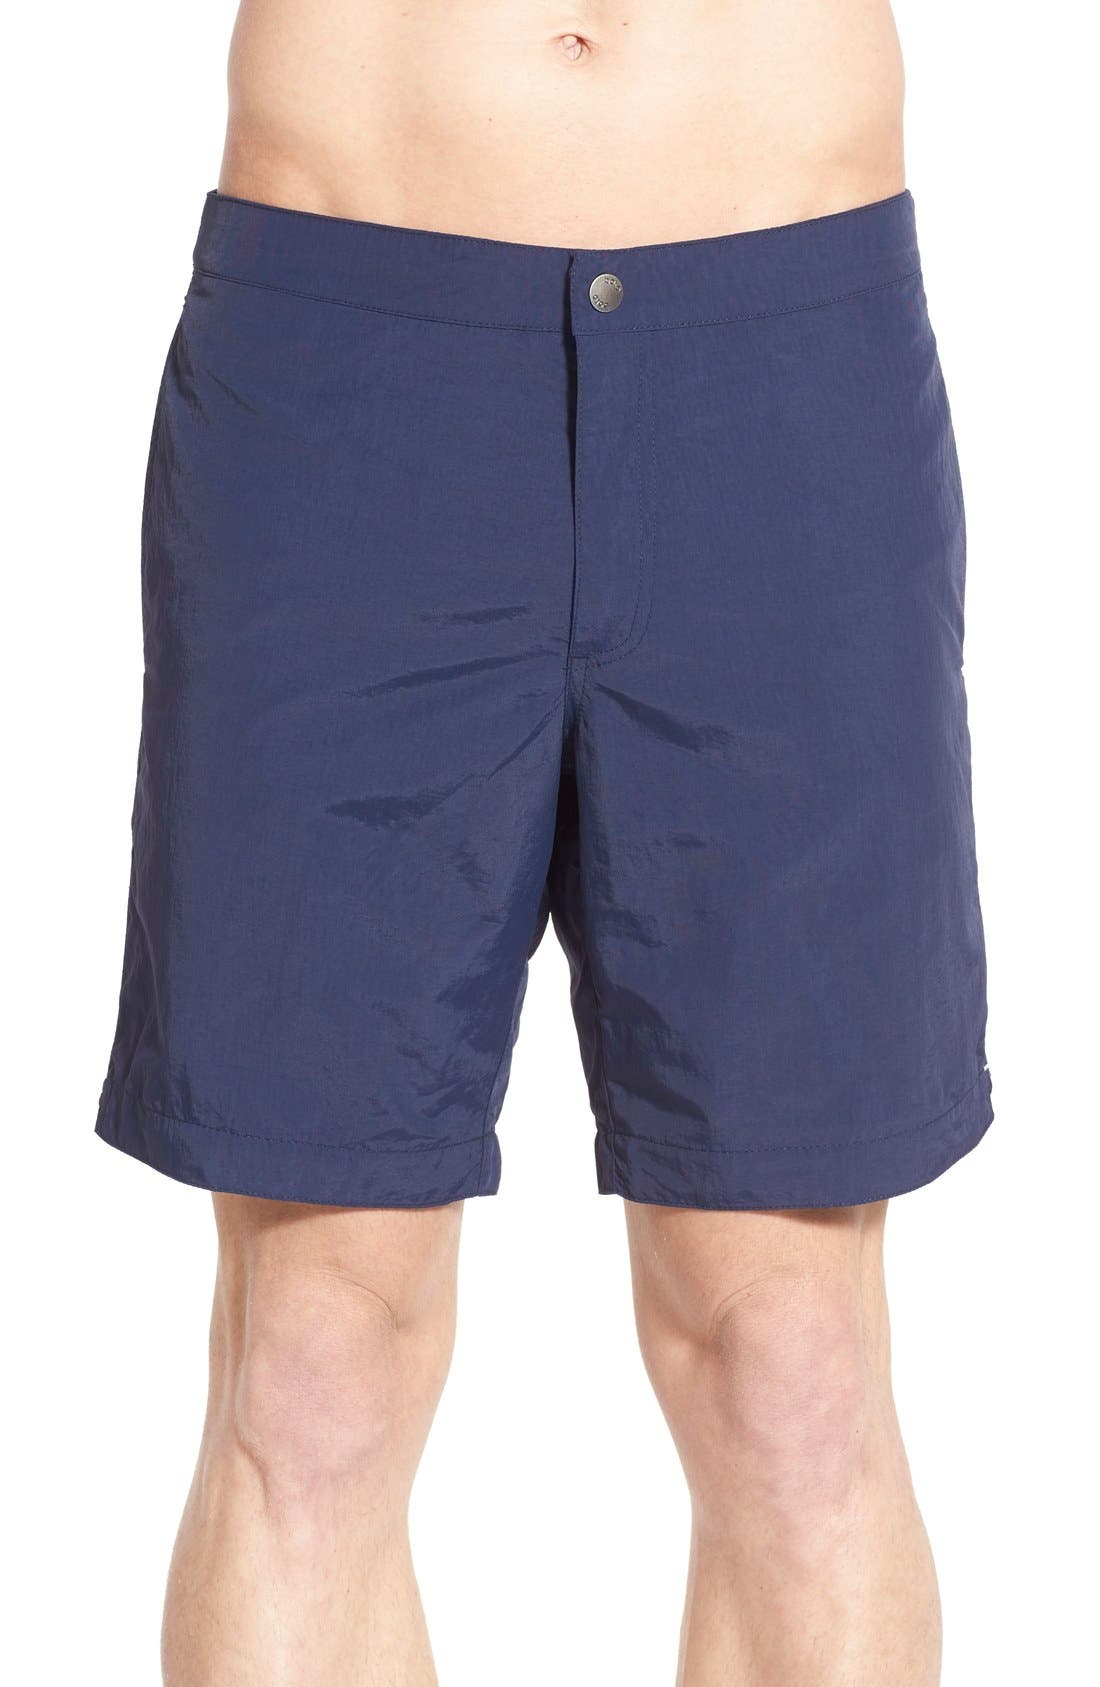 Aruba Tailored Fit 8.5 Inch Swim Trunks,                             Main thumbnail 1, color,                             Deep Navy Blue